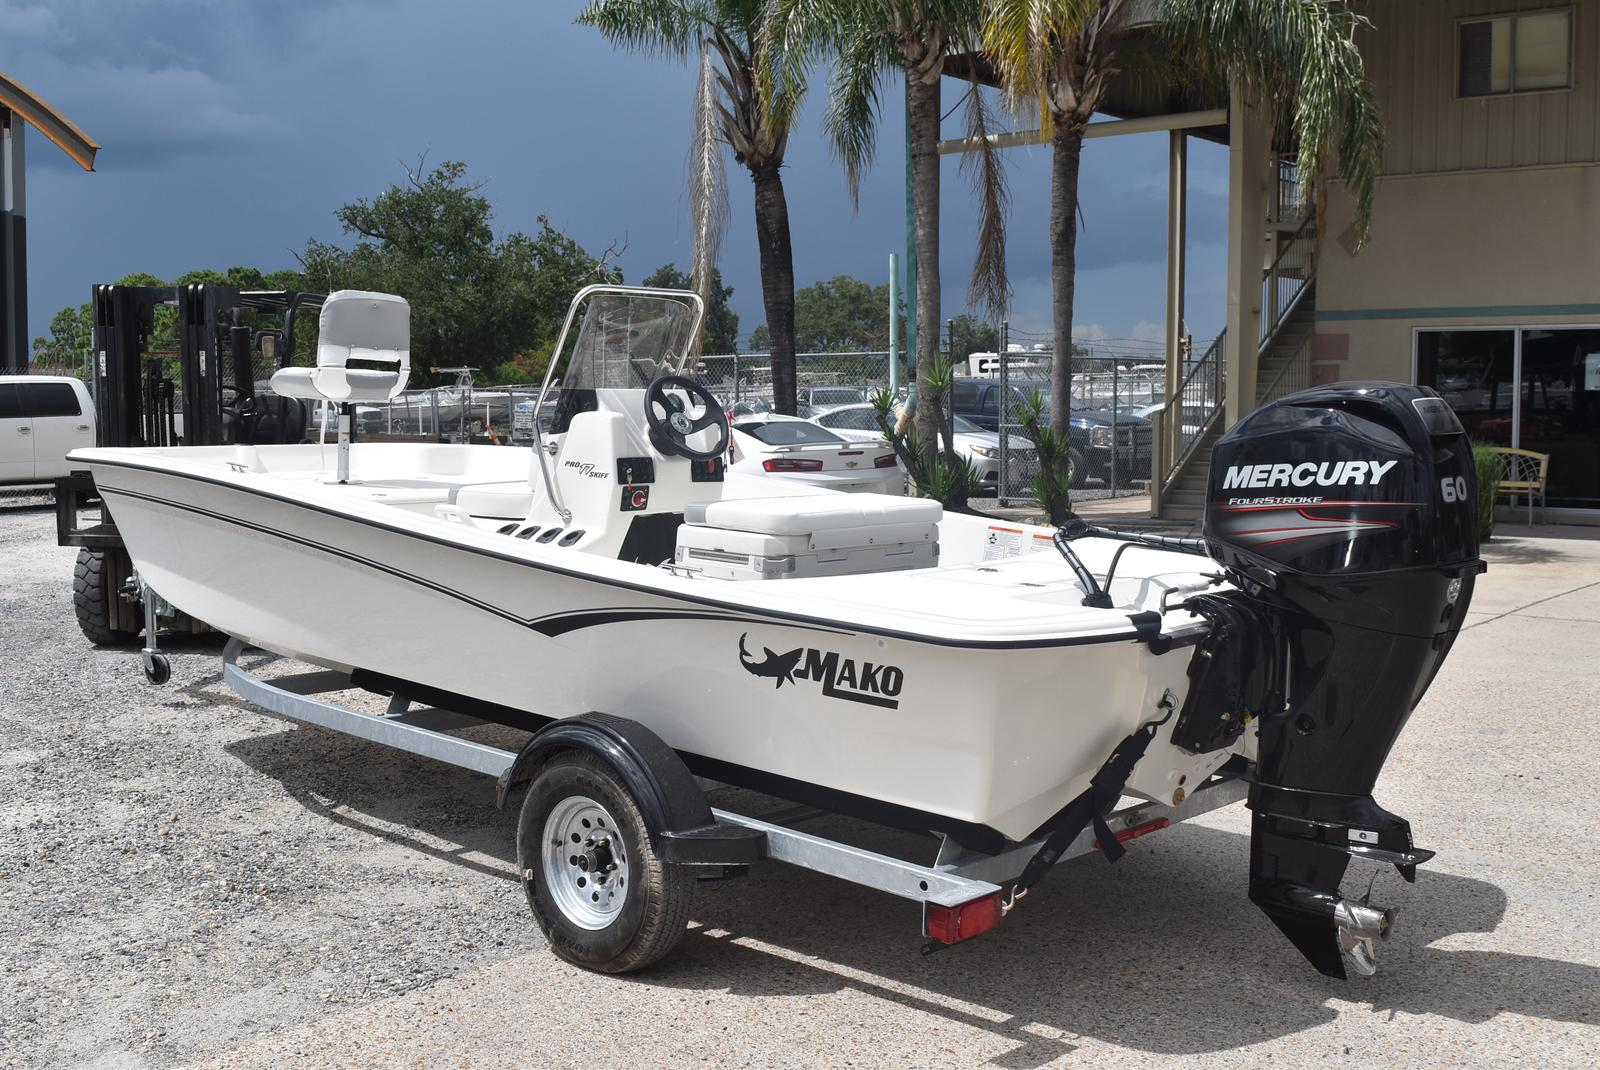 2020 Mako boat for sale, model of the boat is Pro Skiff 17, 75 ELPT & Image # 201 of 702